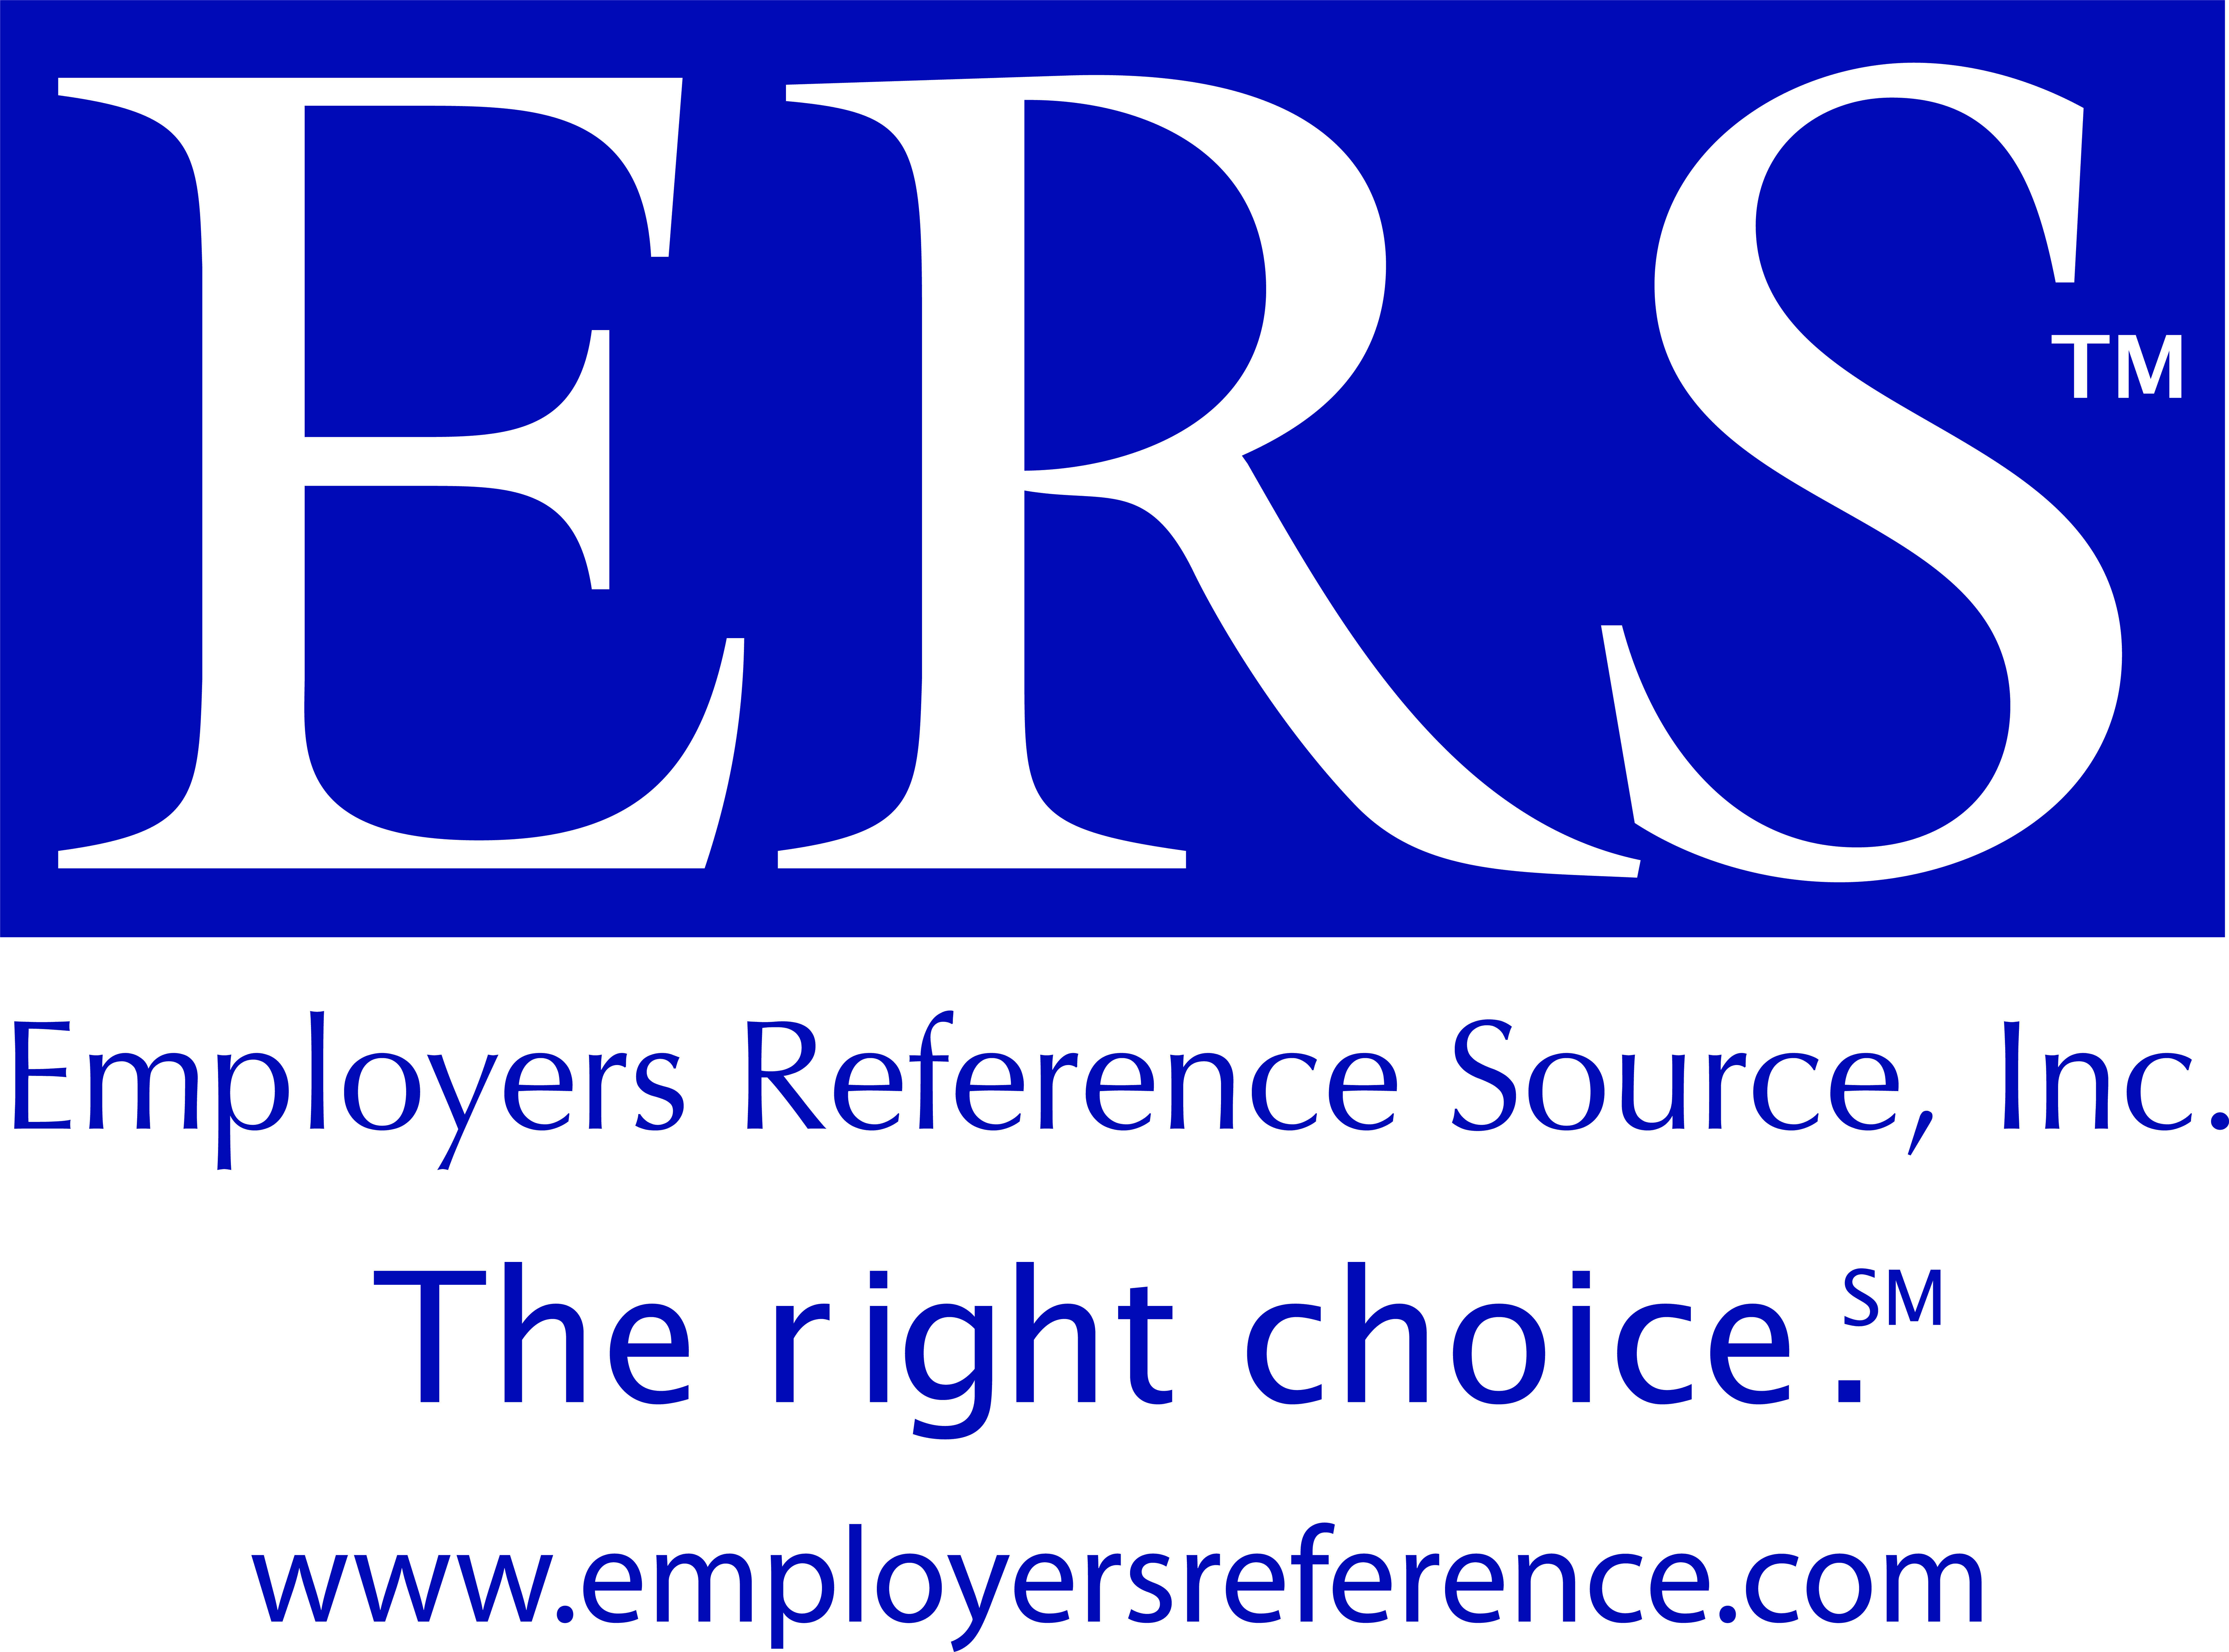 Employers Reference Source, Inc.